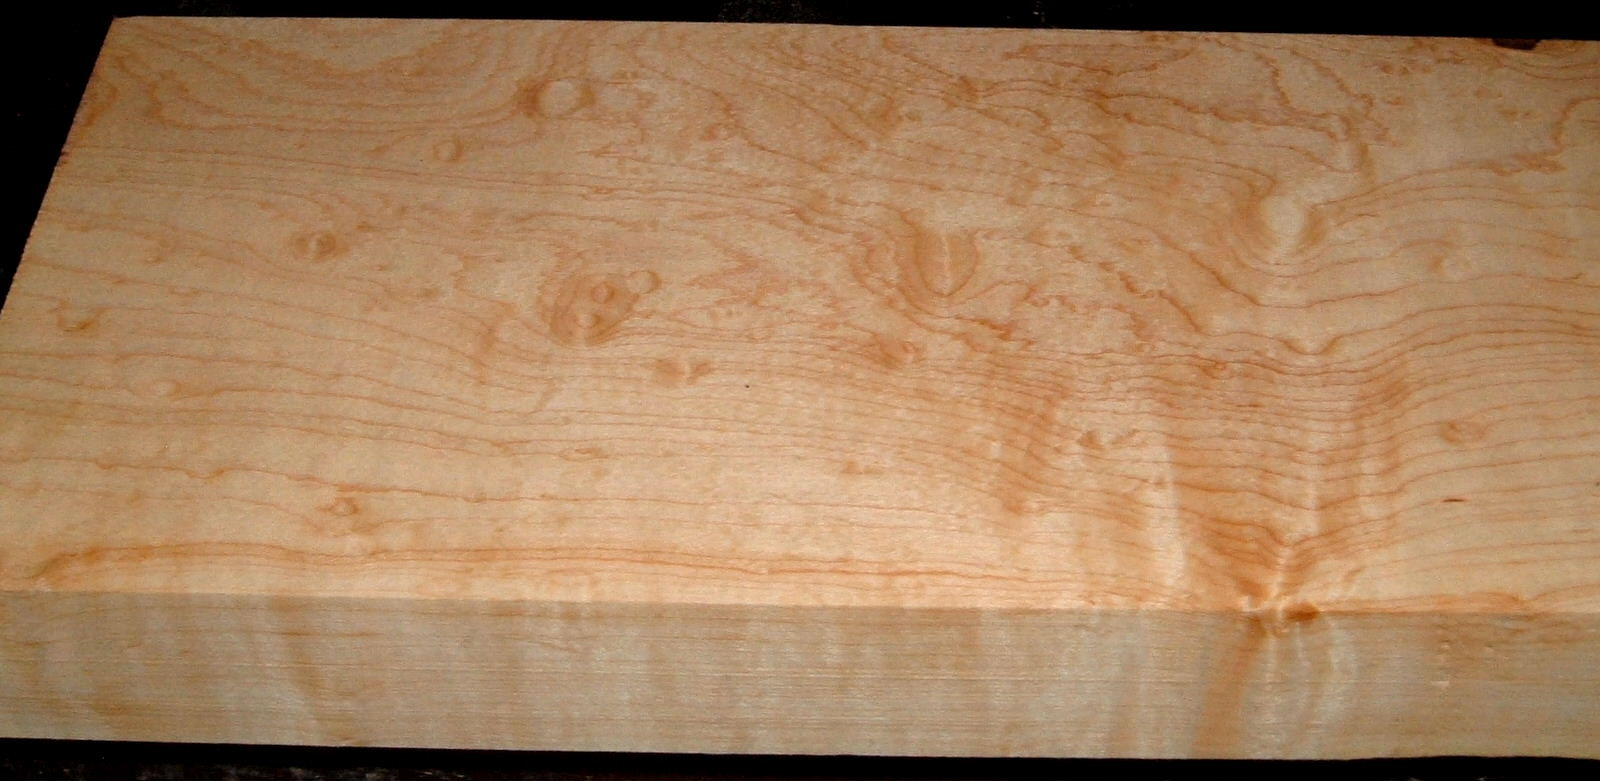 HM2007-108, 1-3/4x6-3/4x46, 8/4 Blistered Figured Hard Maple